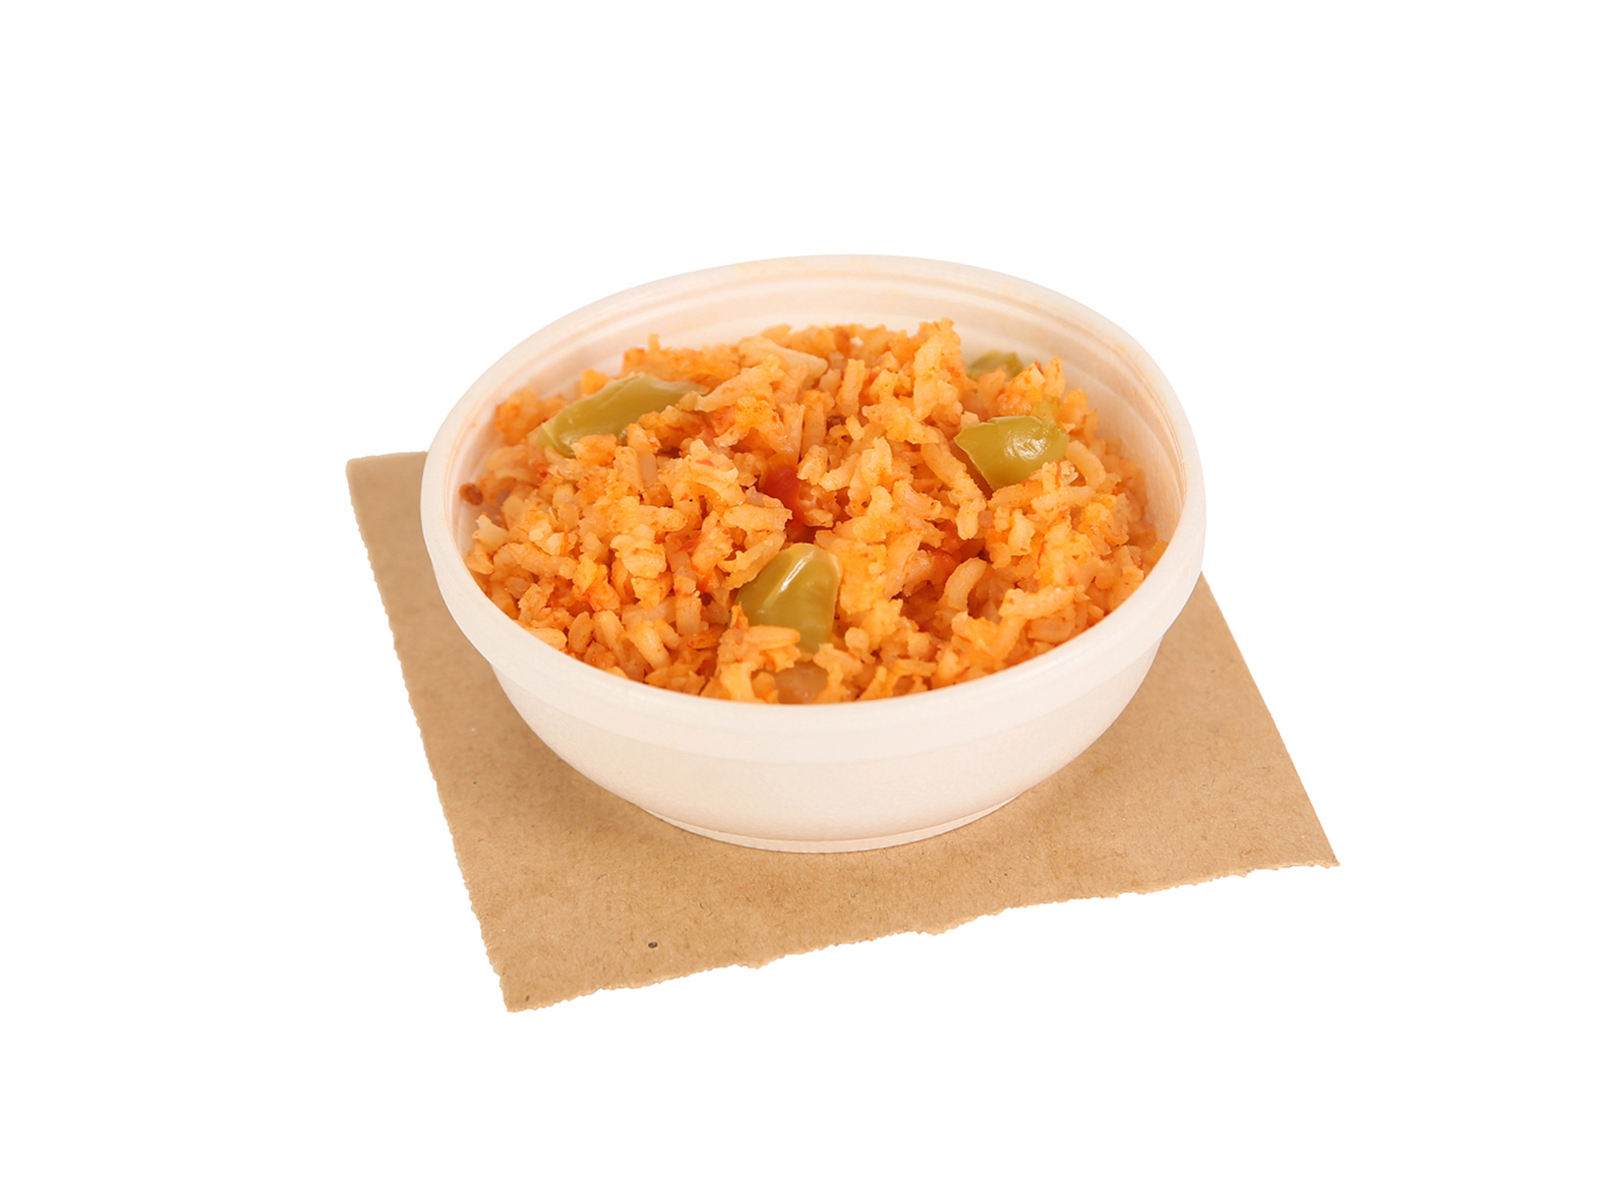 Portion of spanish rice